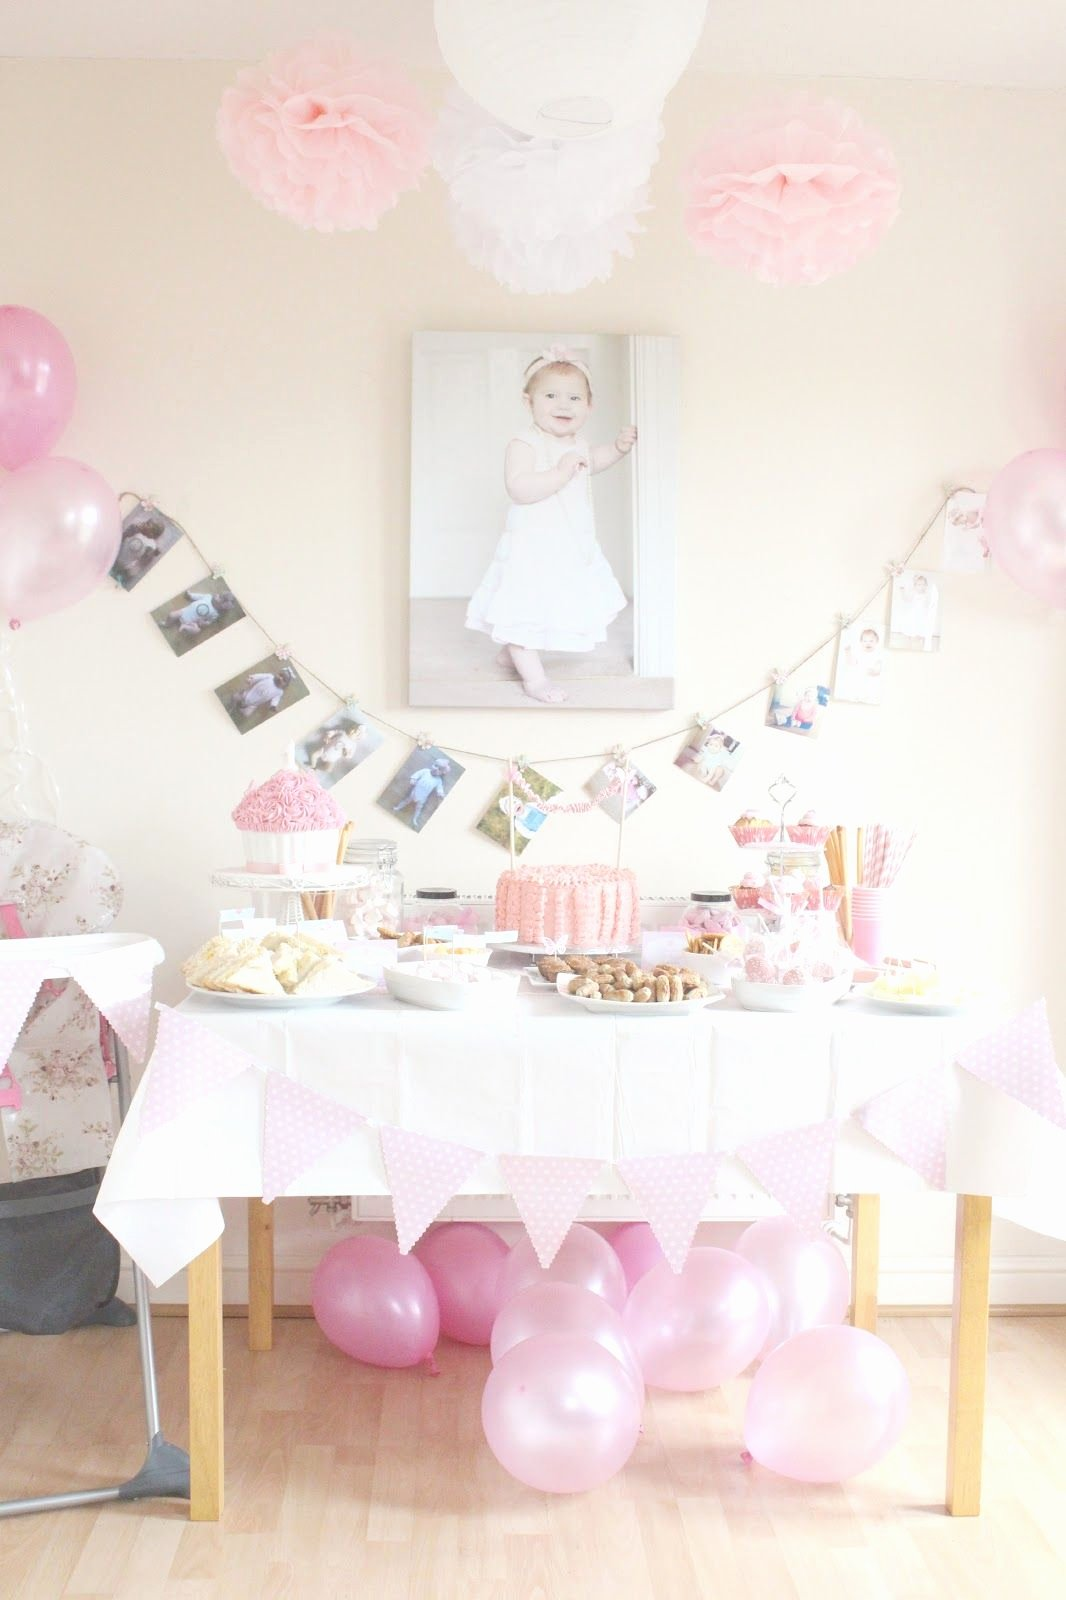 Birthday Decoration Ideas for Baby Girl at Home Lovely First Birthday Party & Decor Vintage Princess Inspired